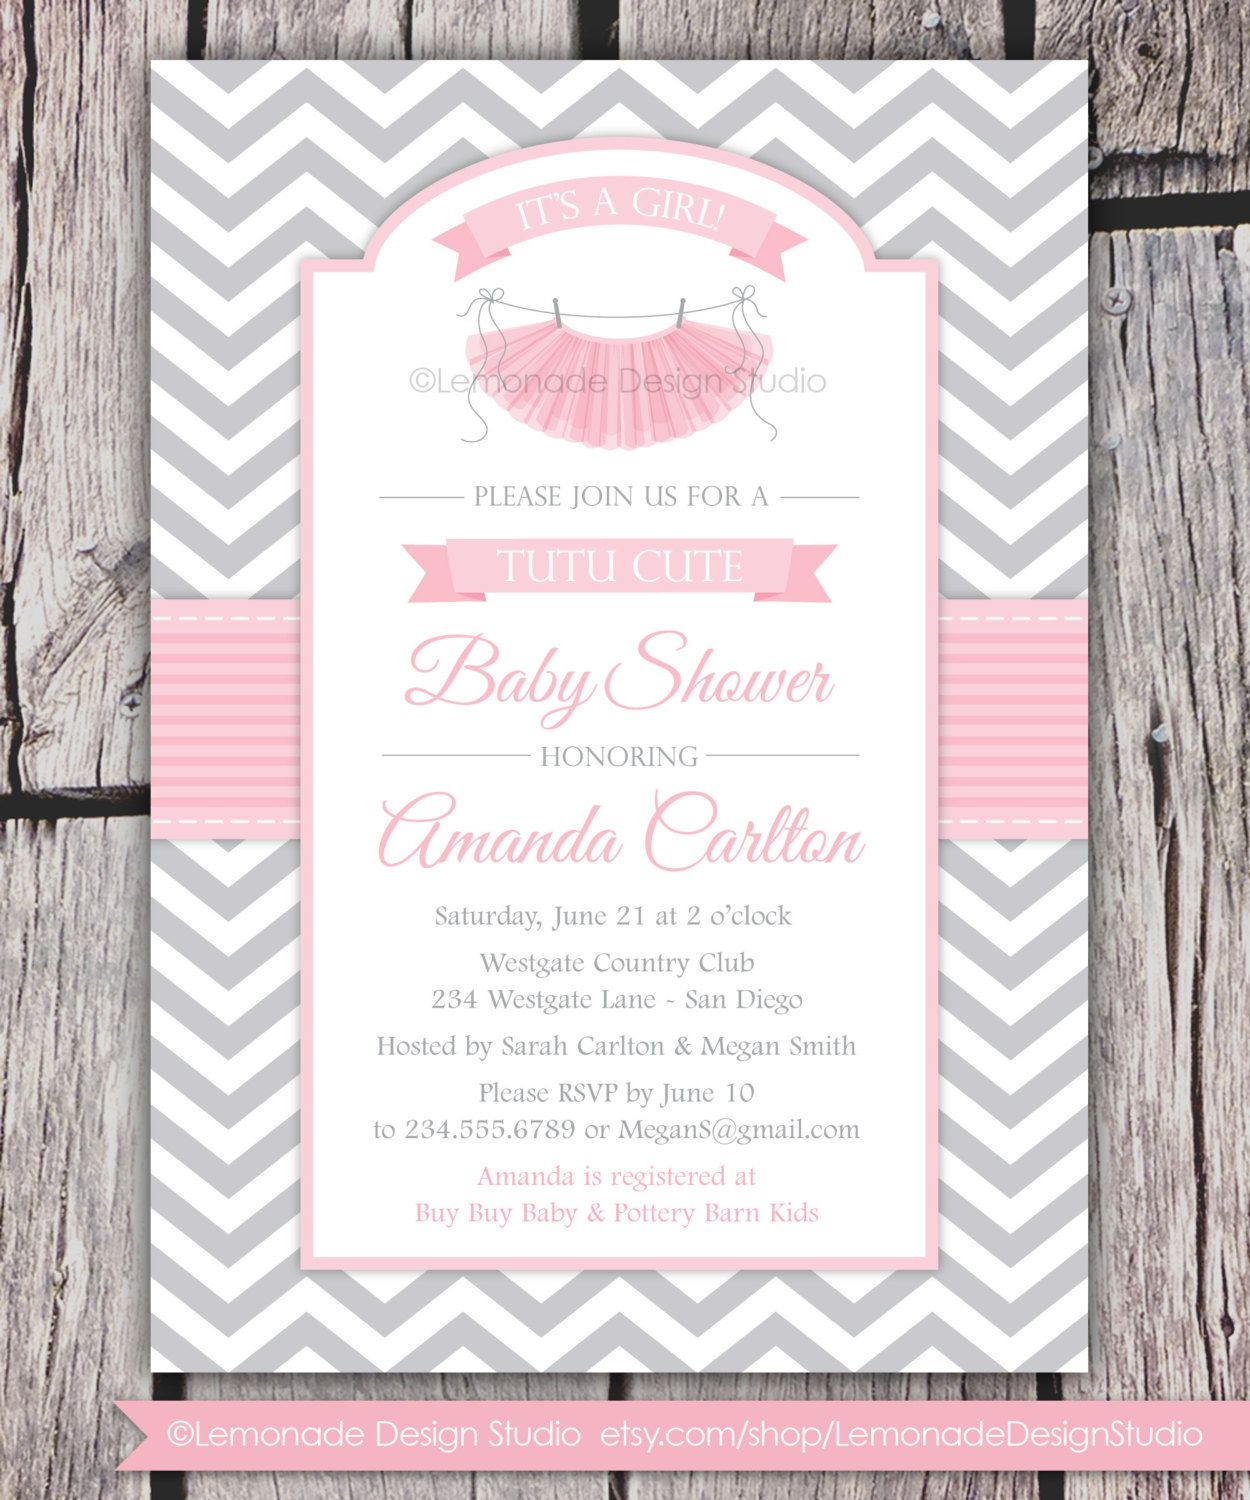 Babyshowerinvitation Tutu Cute Baby Shower Invitation Chevron Pink Grey Any Colors Party Modern Pritable Diy Or